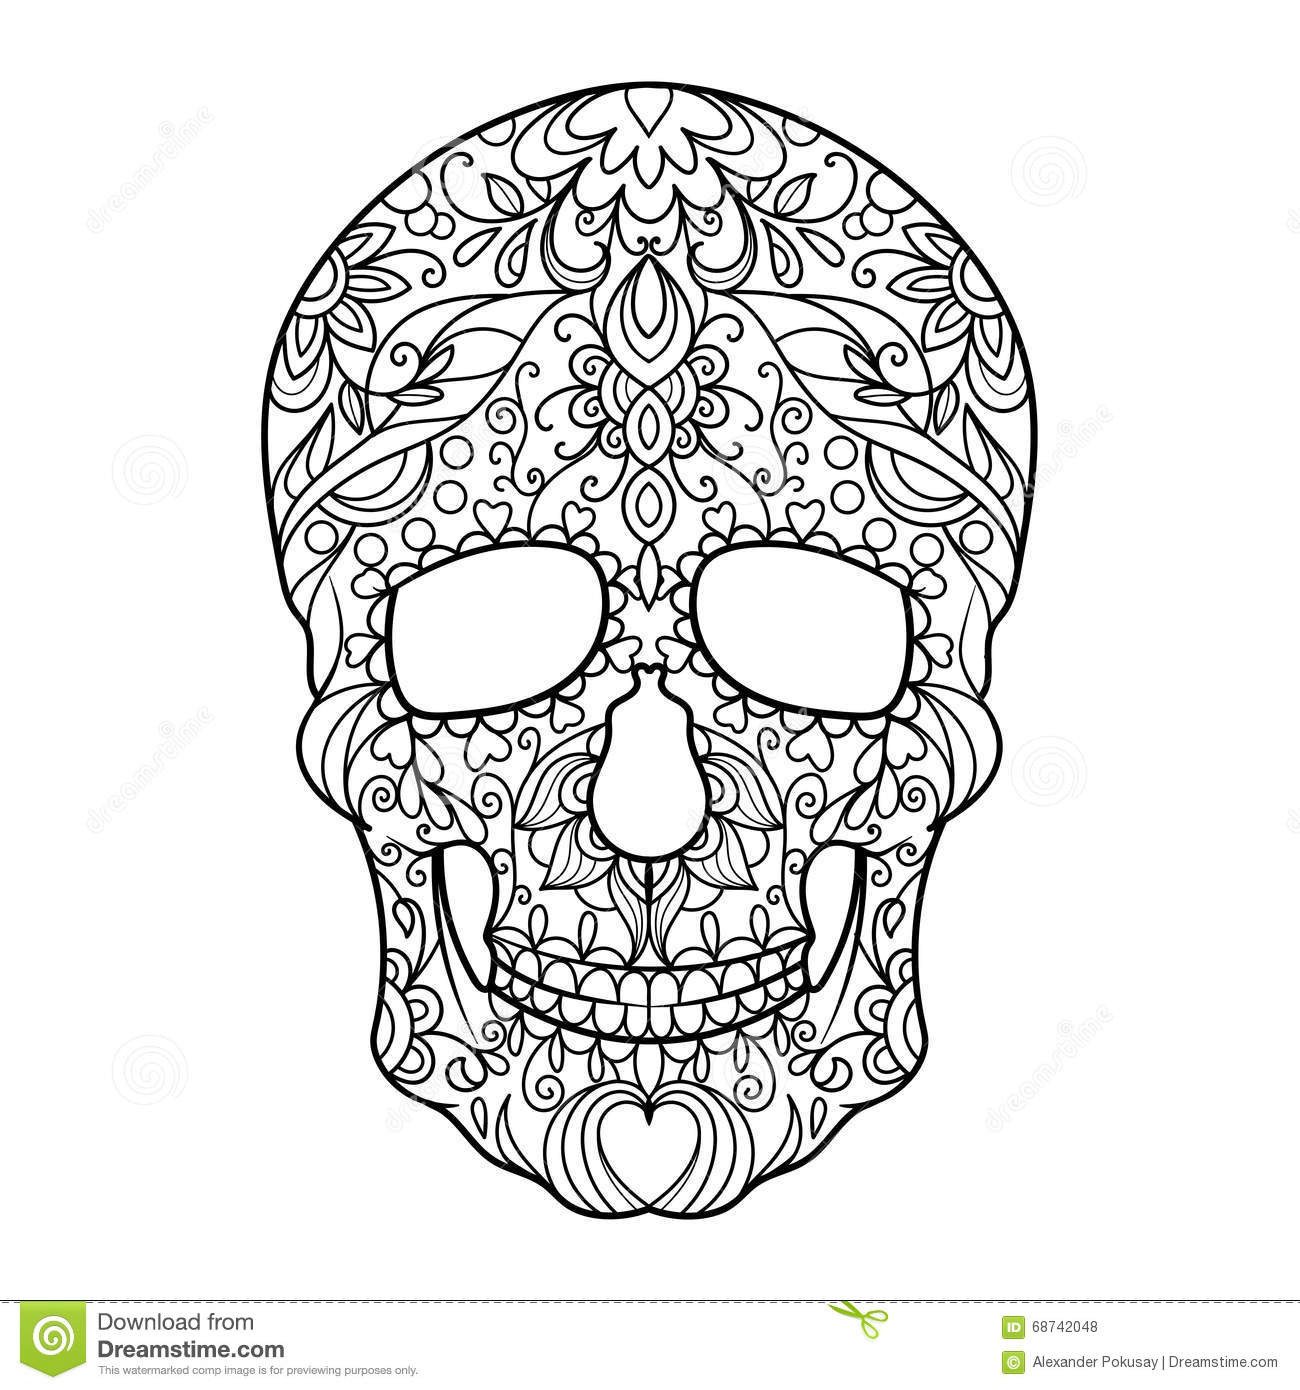 Adult Coloring Pages Abstract Skull  Abstract Skulls Coloring Coloring Pages